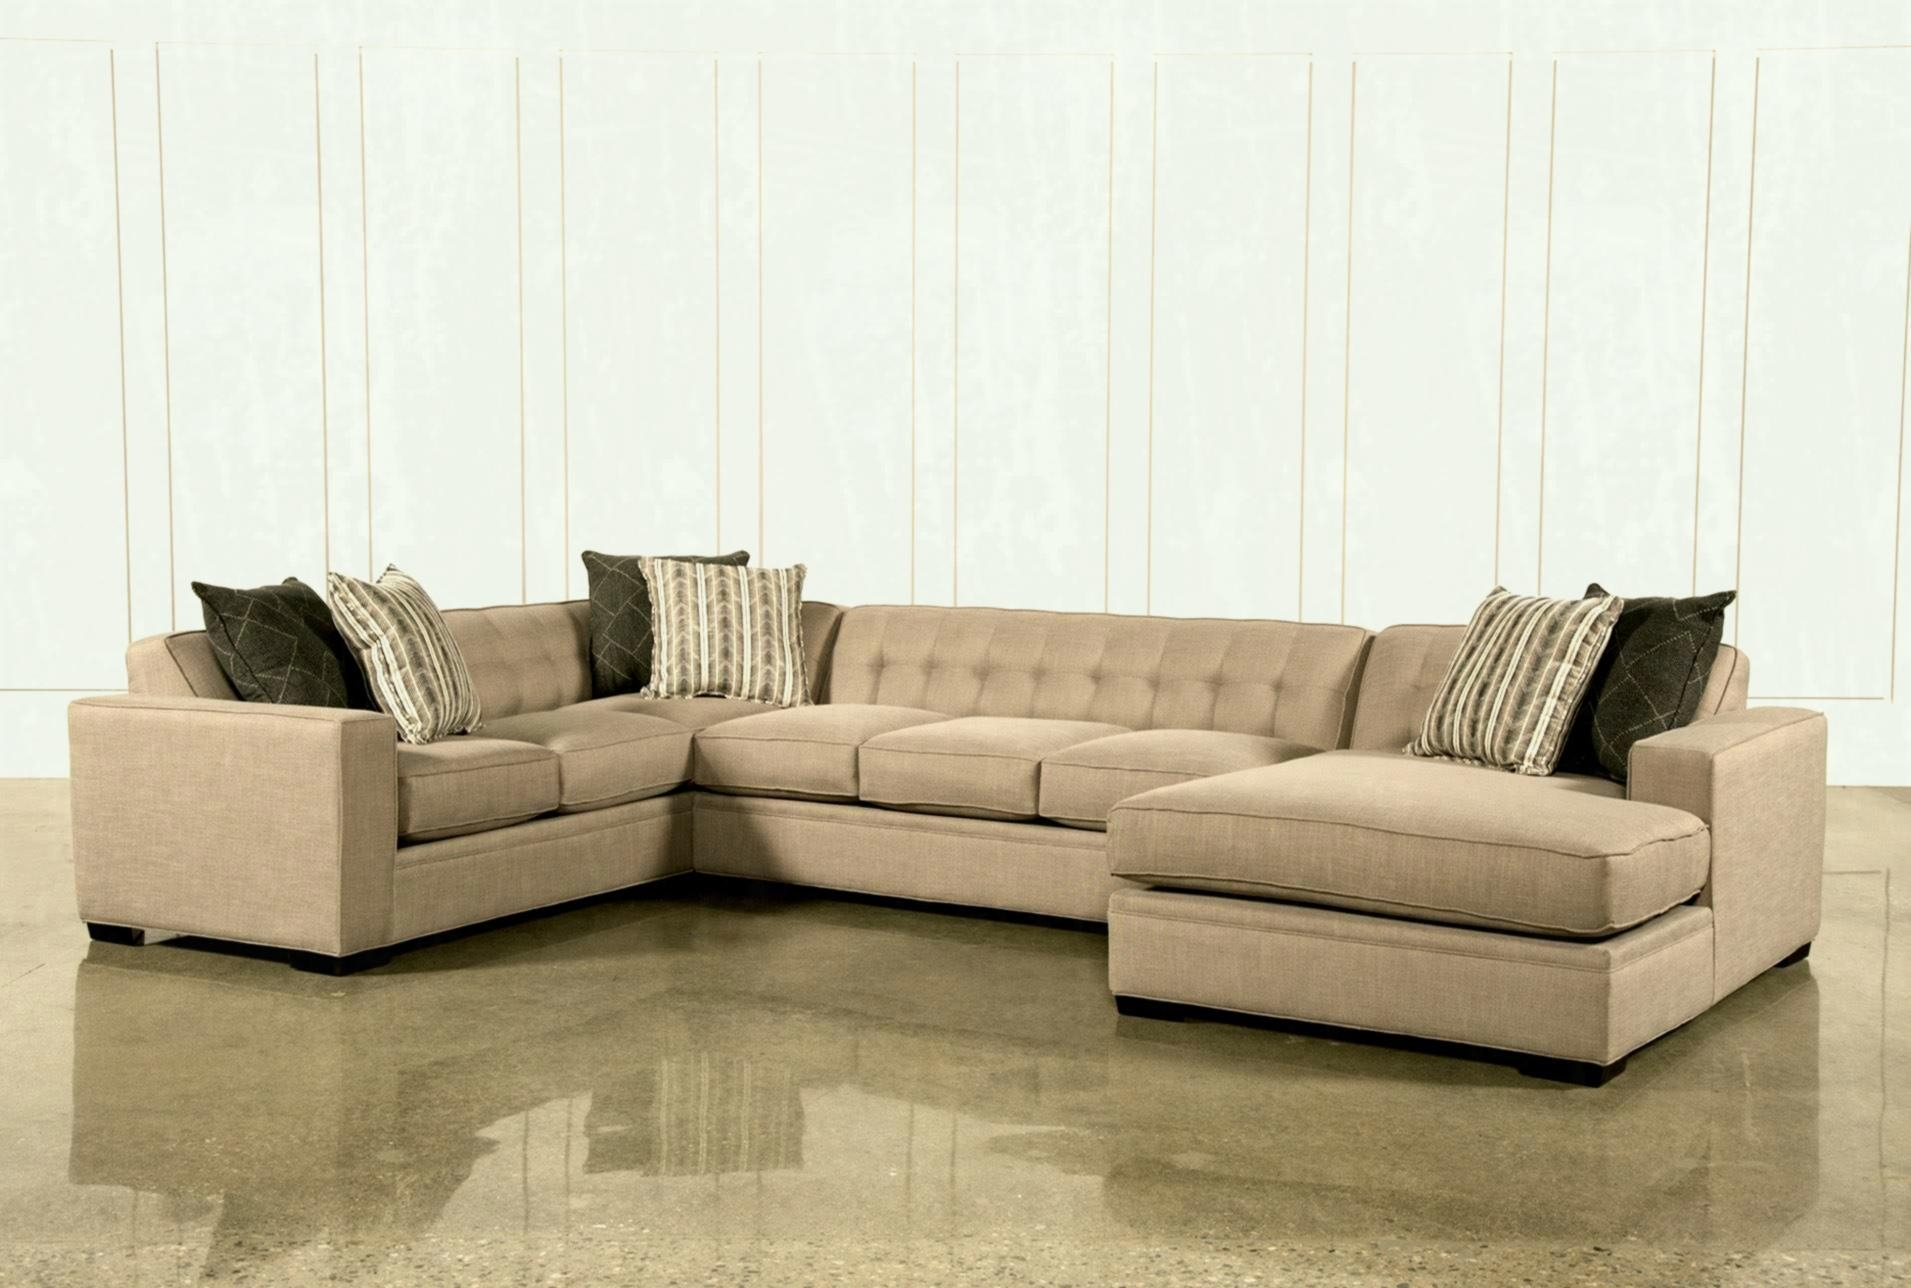 Living Spaces Sectional - Tidex in Aspen 2 Piece Sleeper Sectionals With Raf Chaise (Image 17 of 30)